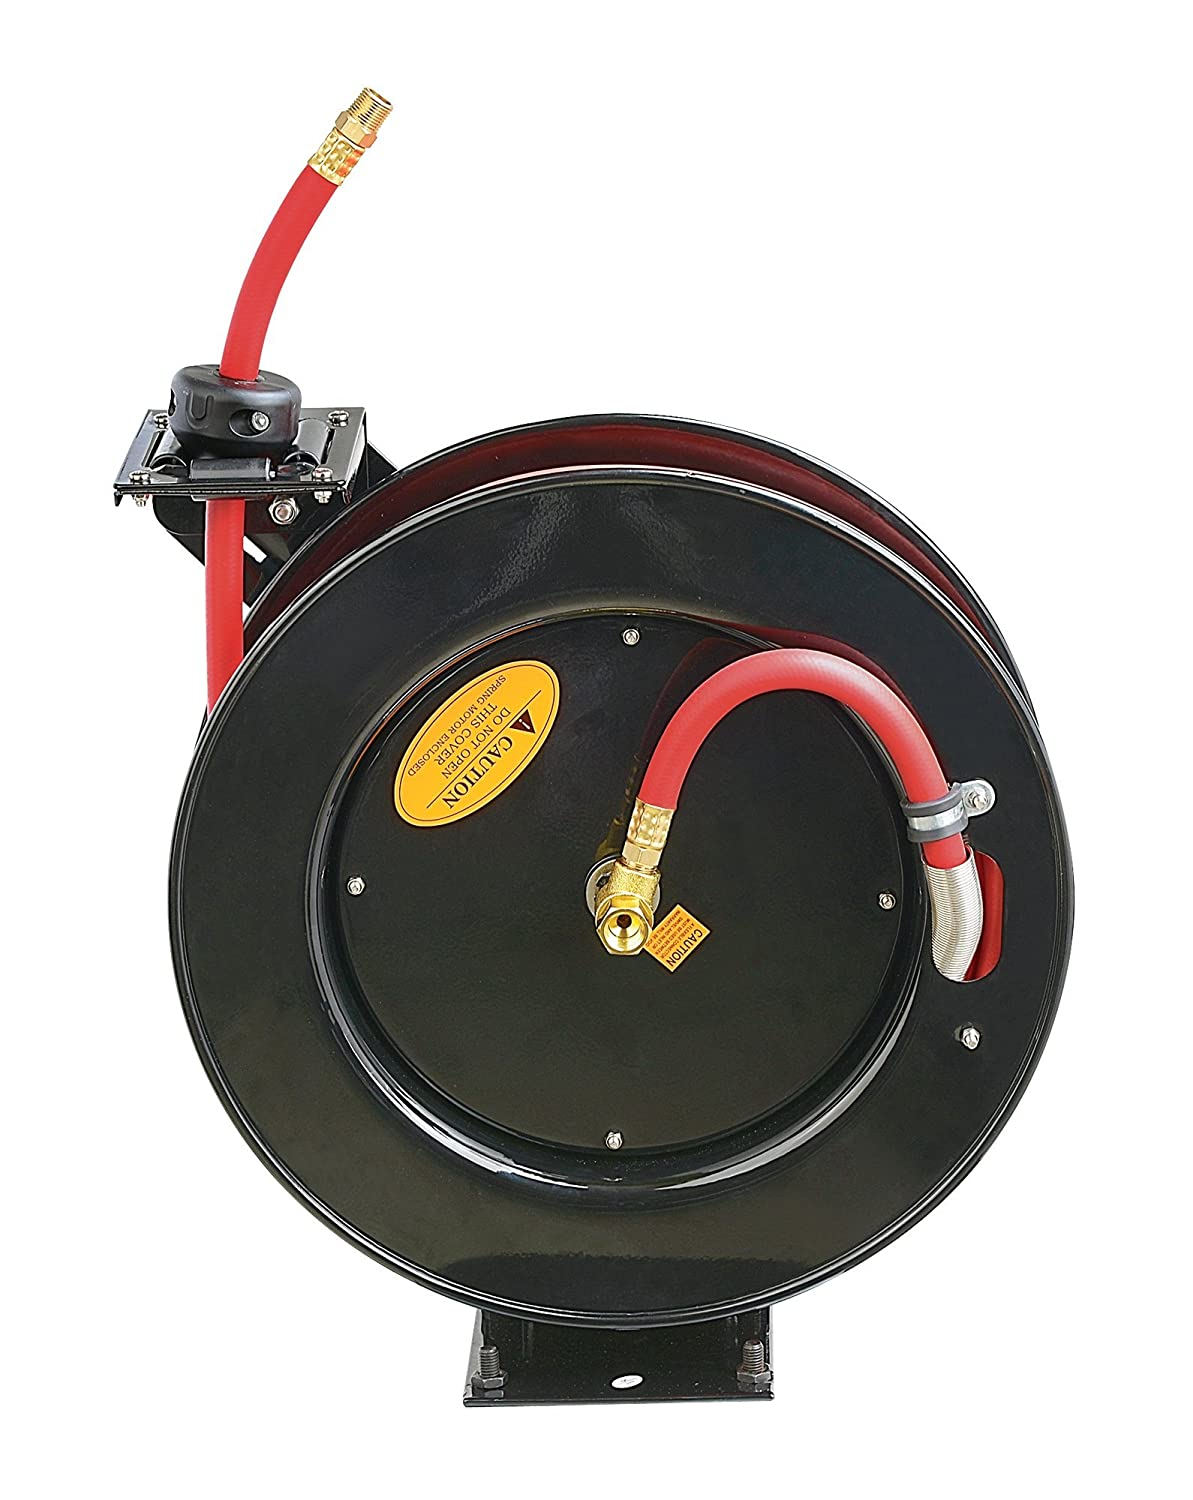 """ReelWorks L805083A Steel Retractable Air Compressor/Water Hose Reel with 3/8"""" x 25' Hybrid Polymer Hose, Max. 300 psi"""